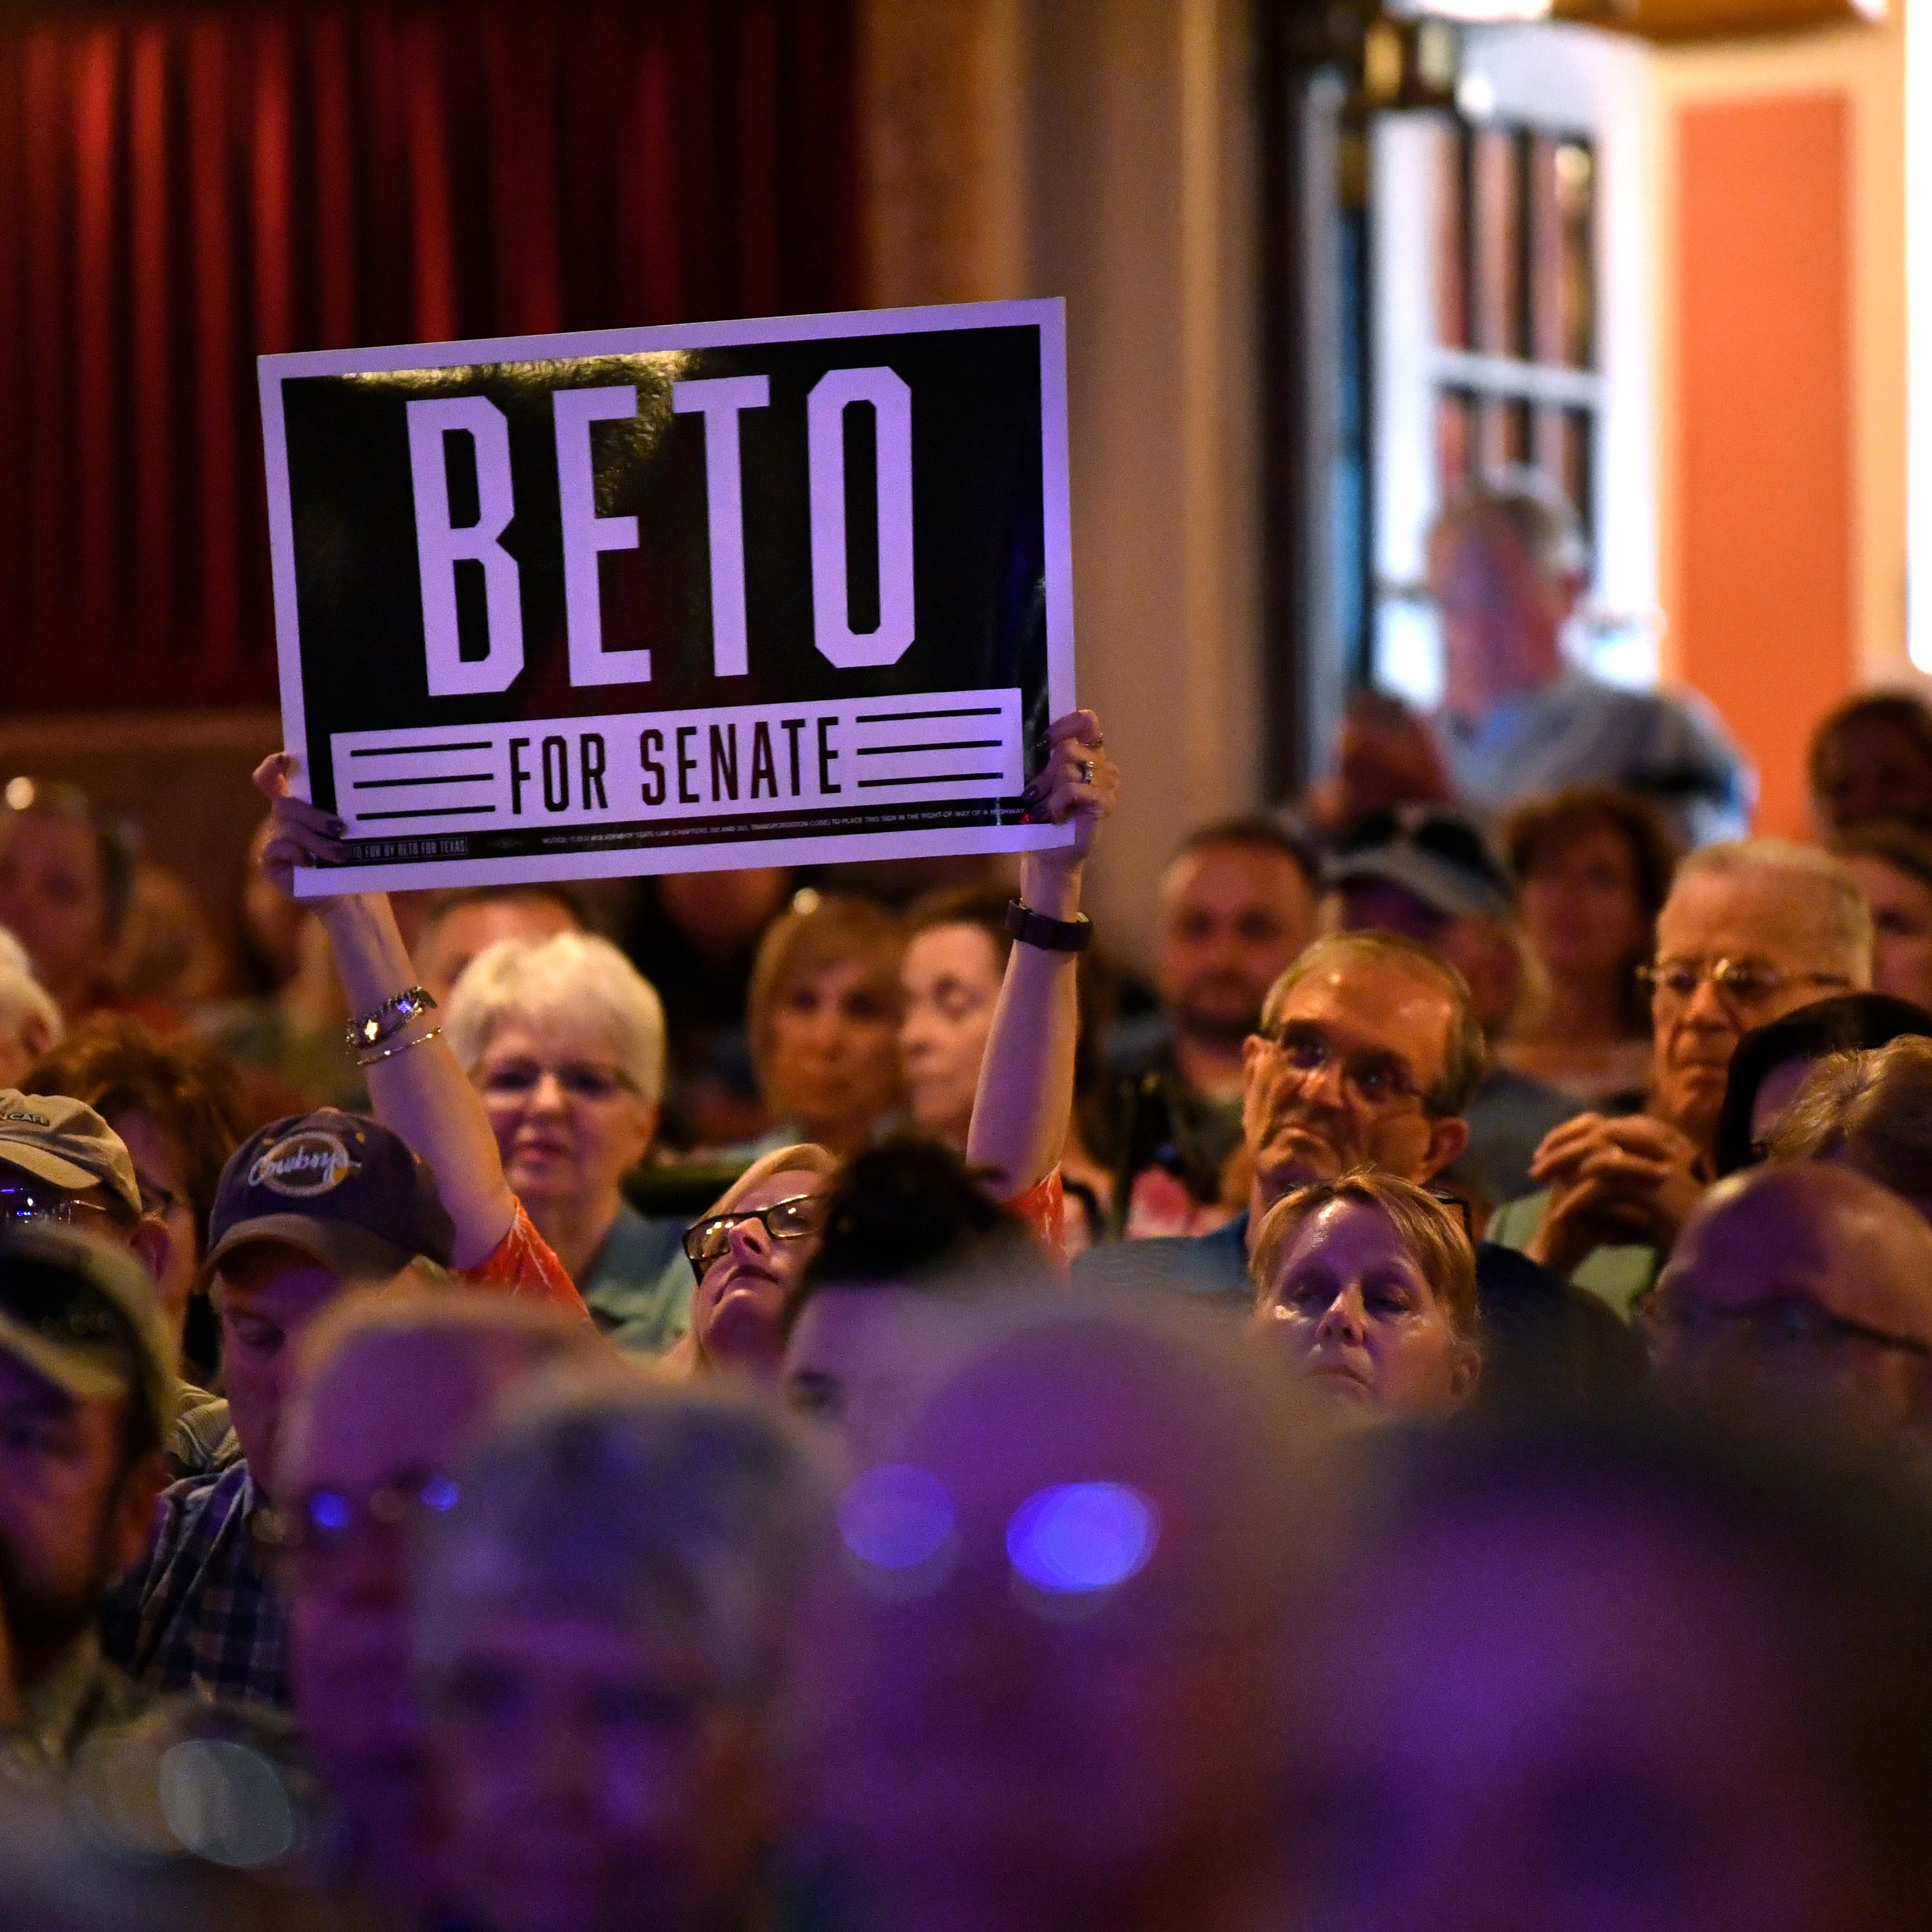 Beto's gains on Cruz keep his supporters enthused